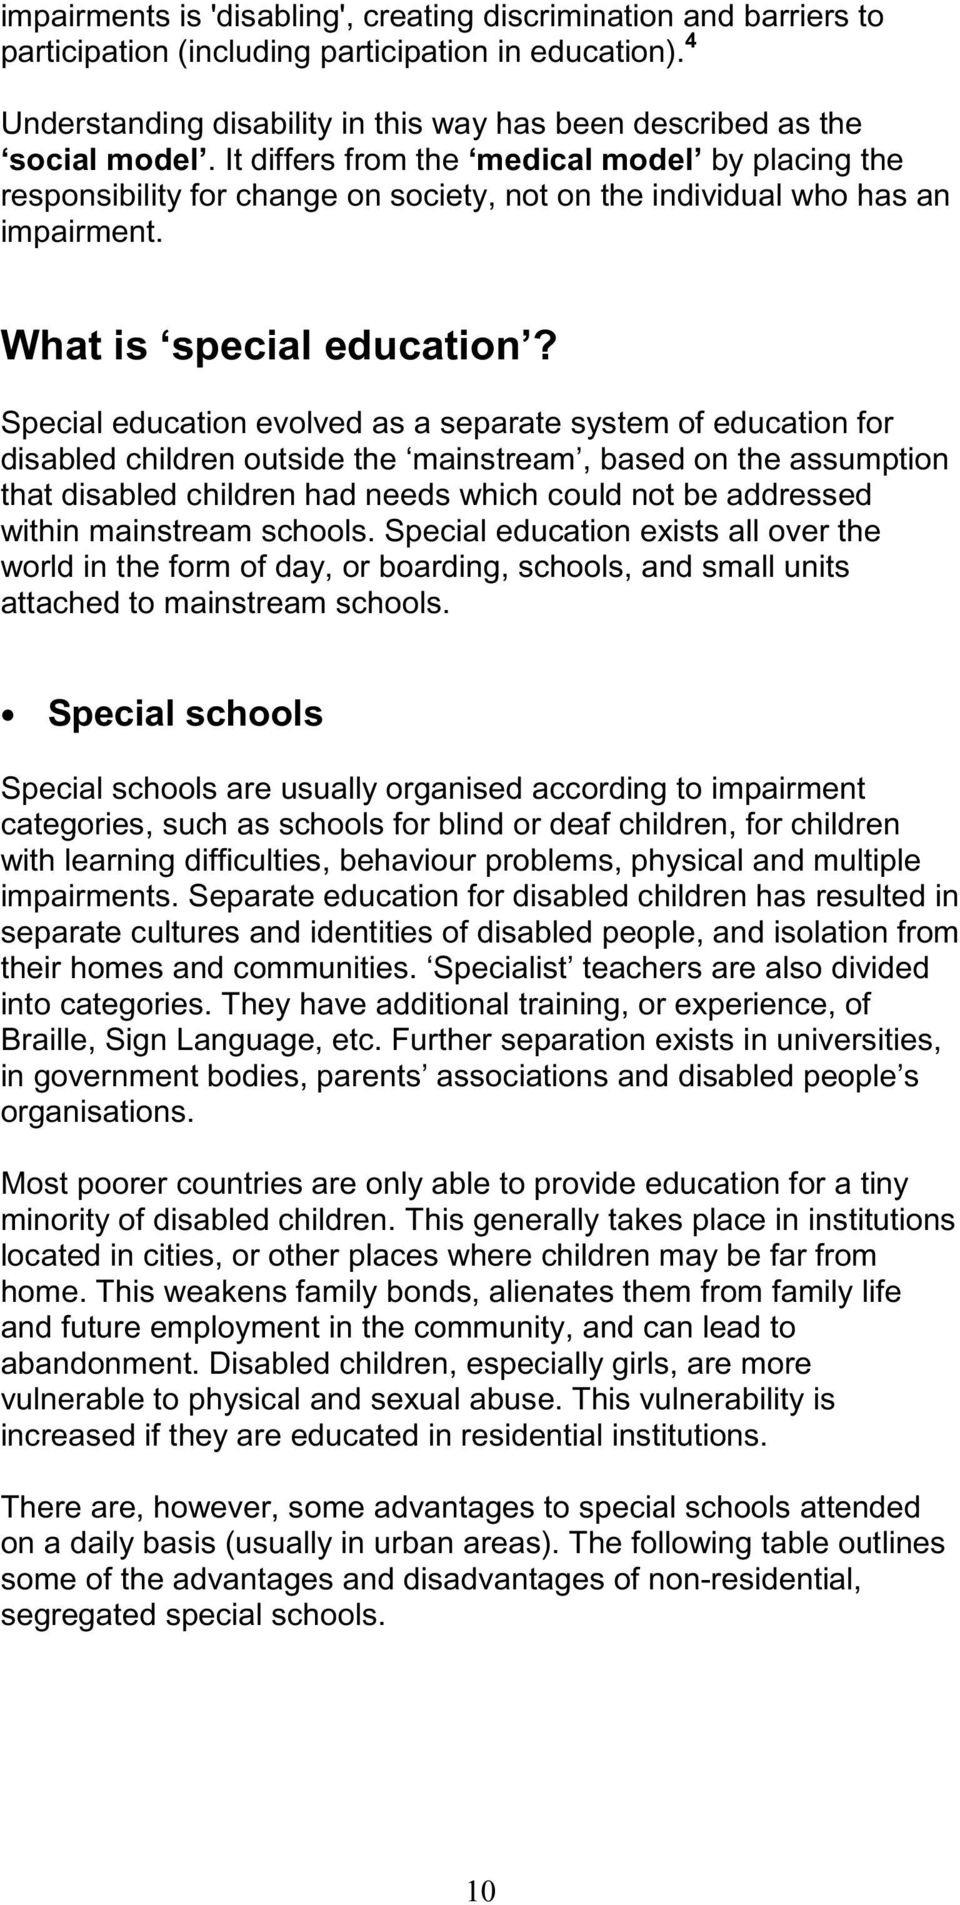 Special education evolved as a separate system of education for disabled children outside the mainstream, based on the assumption that disabled children had needs which could not be addressed within